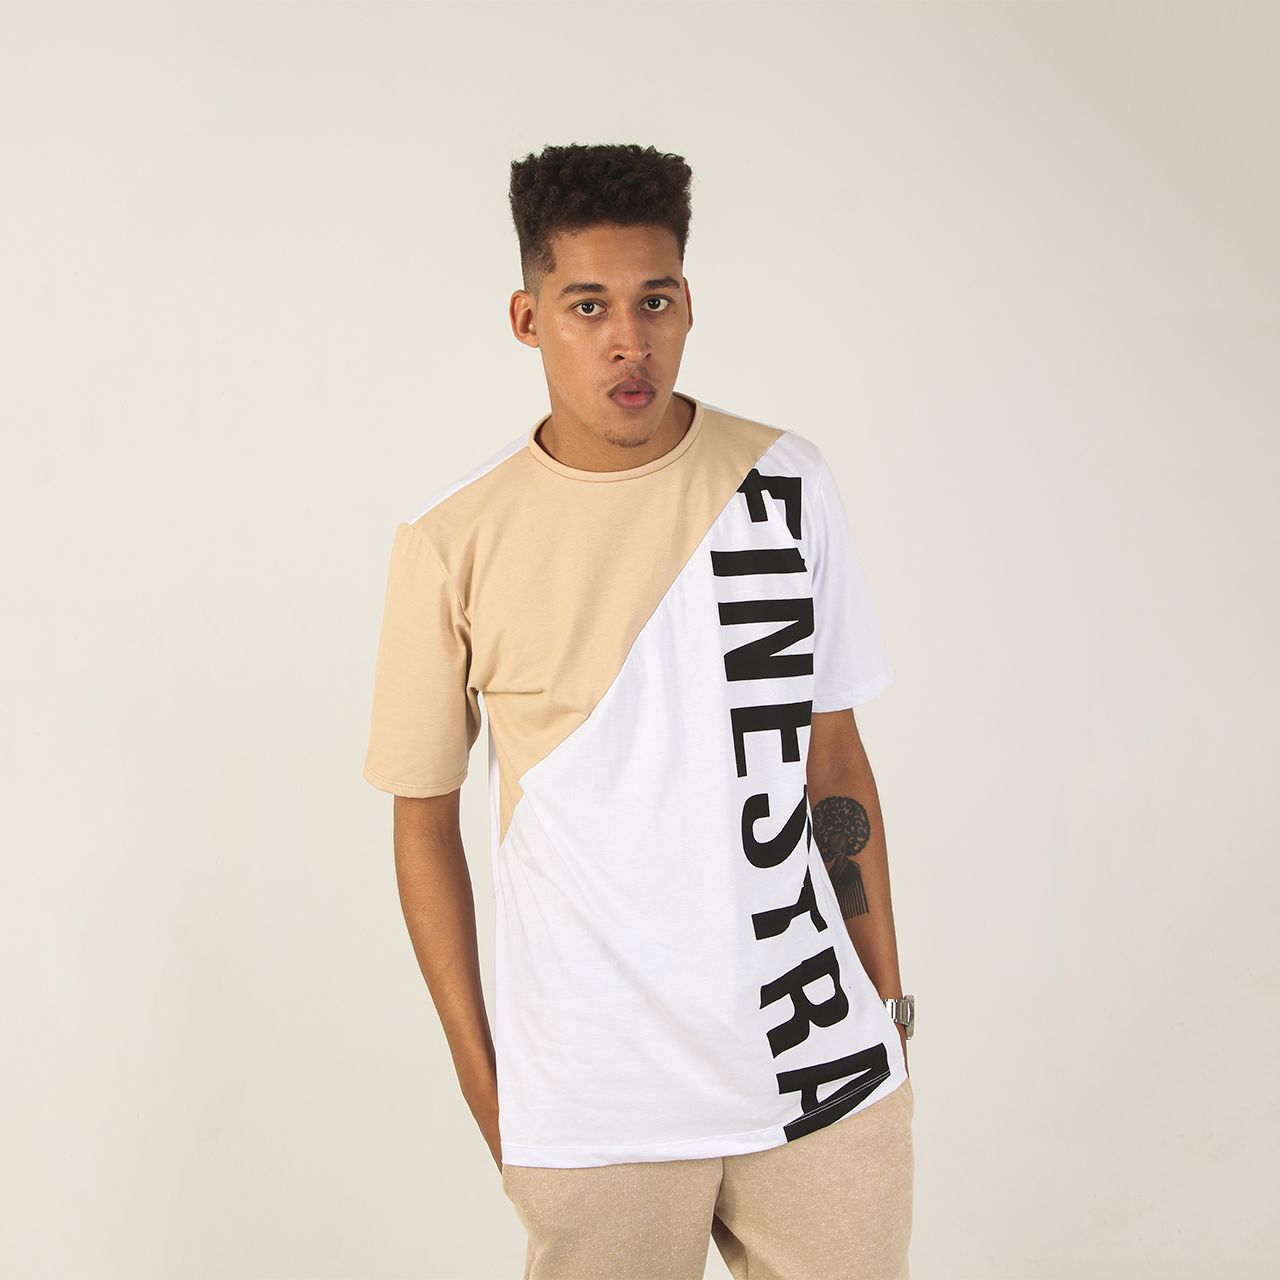 877b63f58 Camiseta Sand - Finestra Camiseta Long - Street wear.